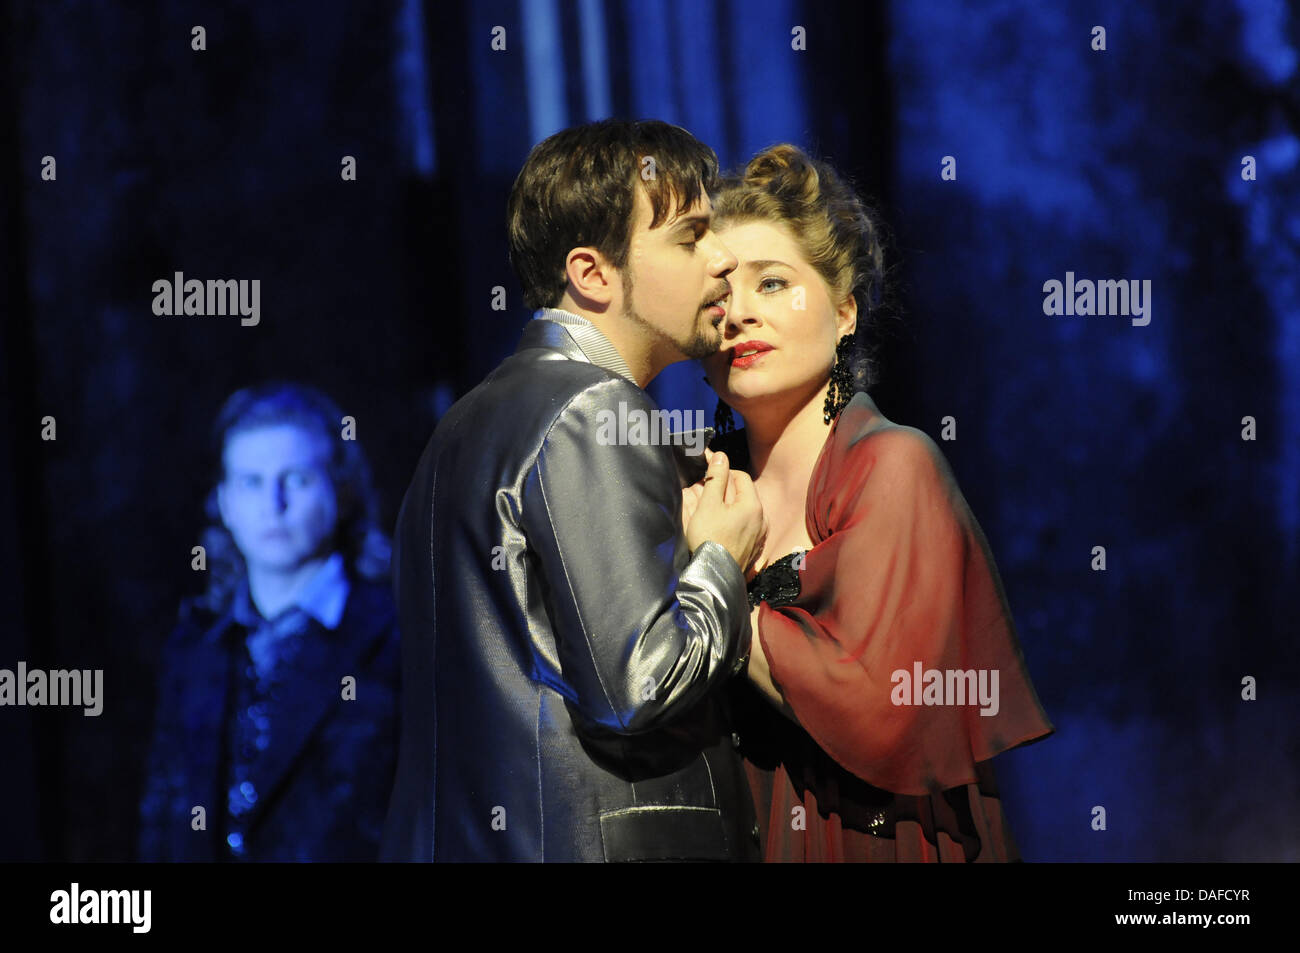 A handout from the Badisches Staatstheater Karlsruhe dated 16 February 2011 shows a scene from the opera production - Stock Image